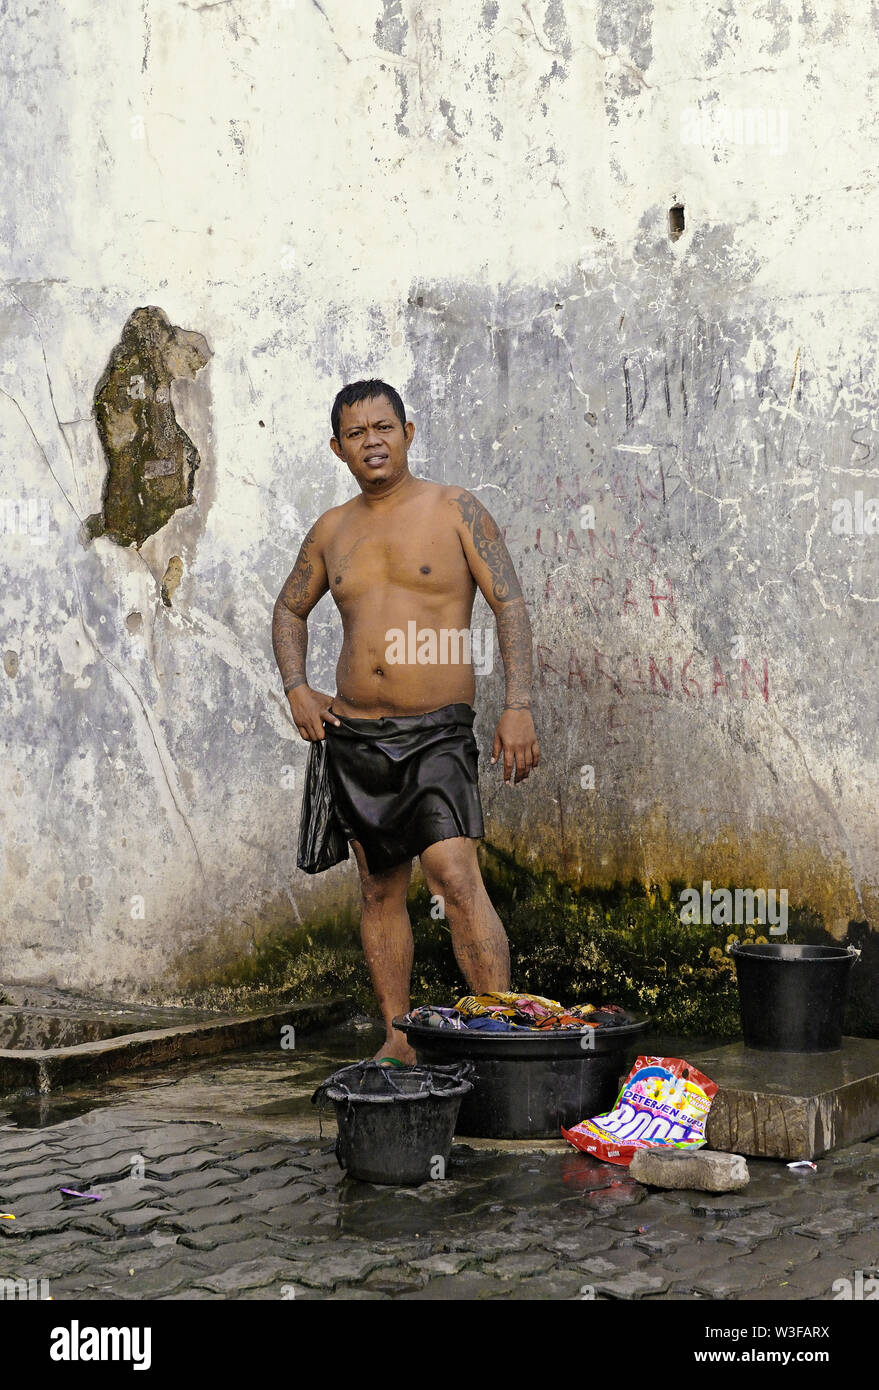 jakarta, dki jakarta/indonesia - may 28, 2010: a homeless construction migrant worker  washing himself and his clothes on jalan kunir in kota tua earl - Stock Image